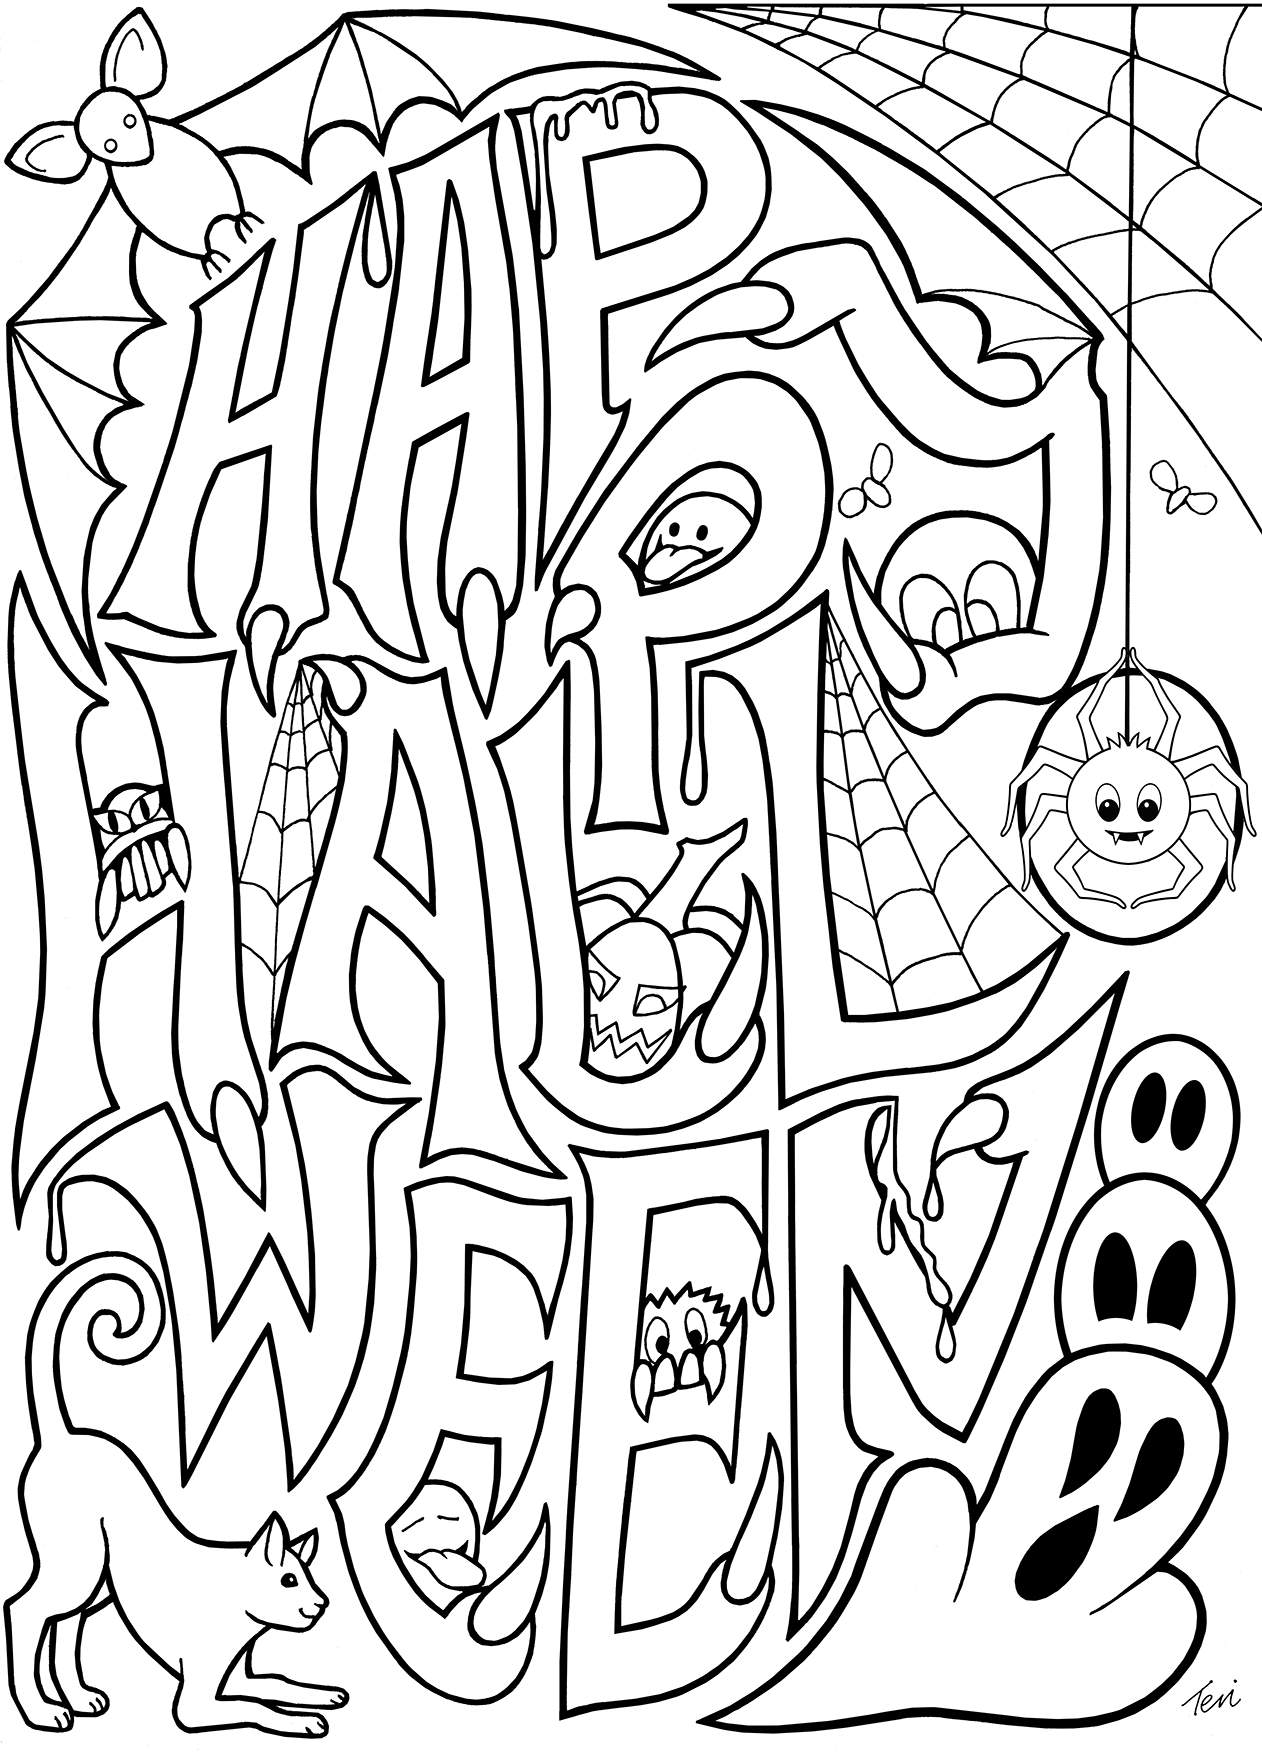 coloring page halloween printable free halloween coloring pages for adults kids halloween printable page coloring